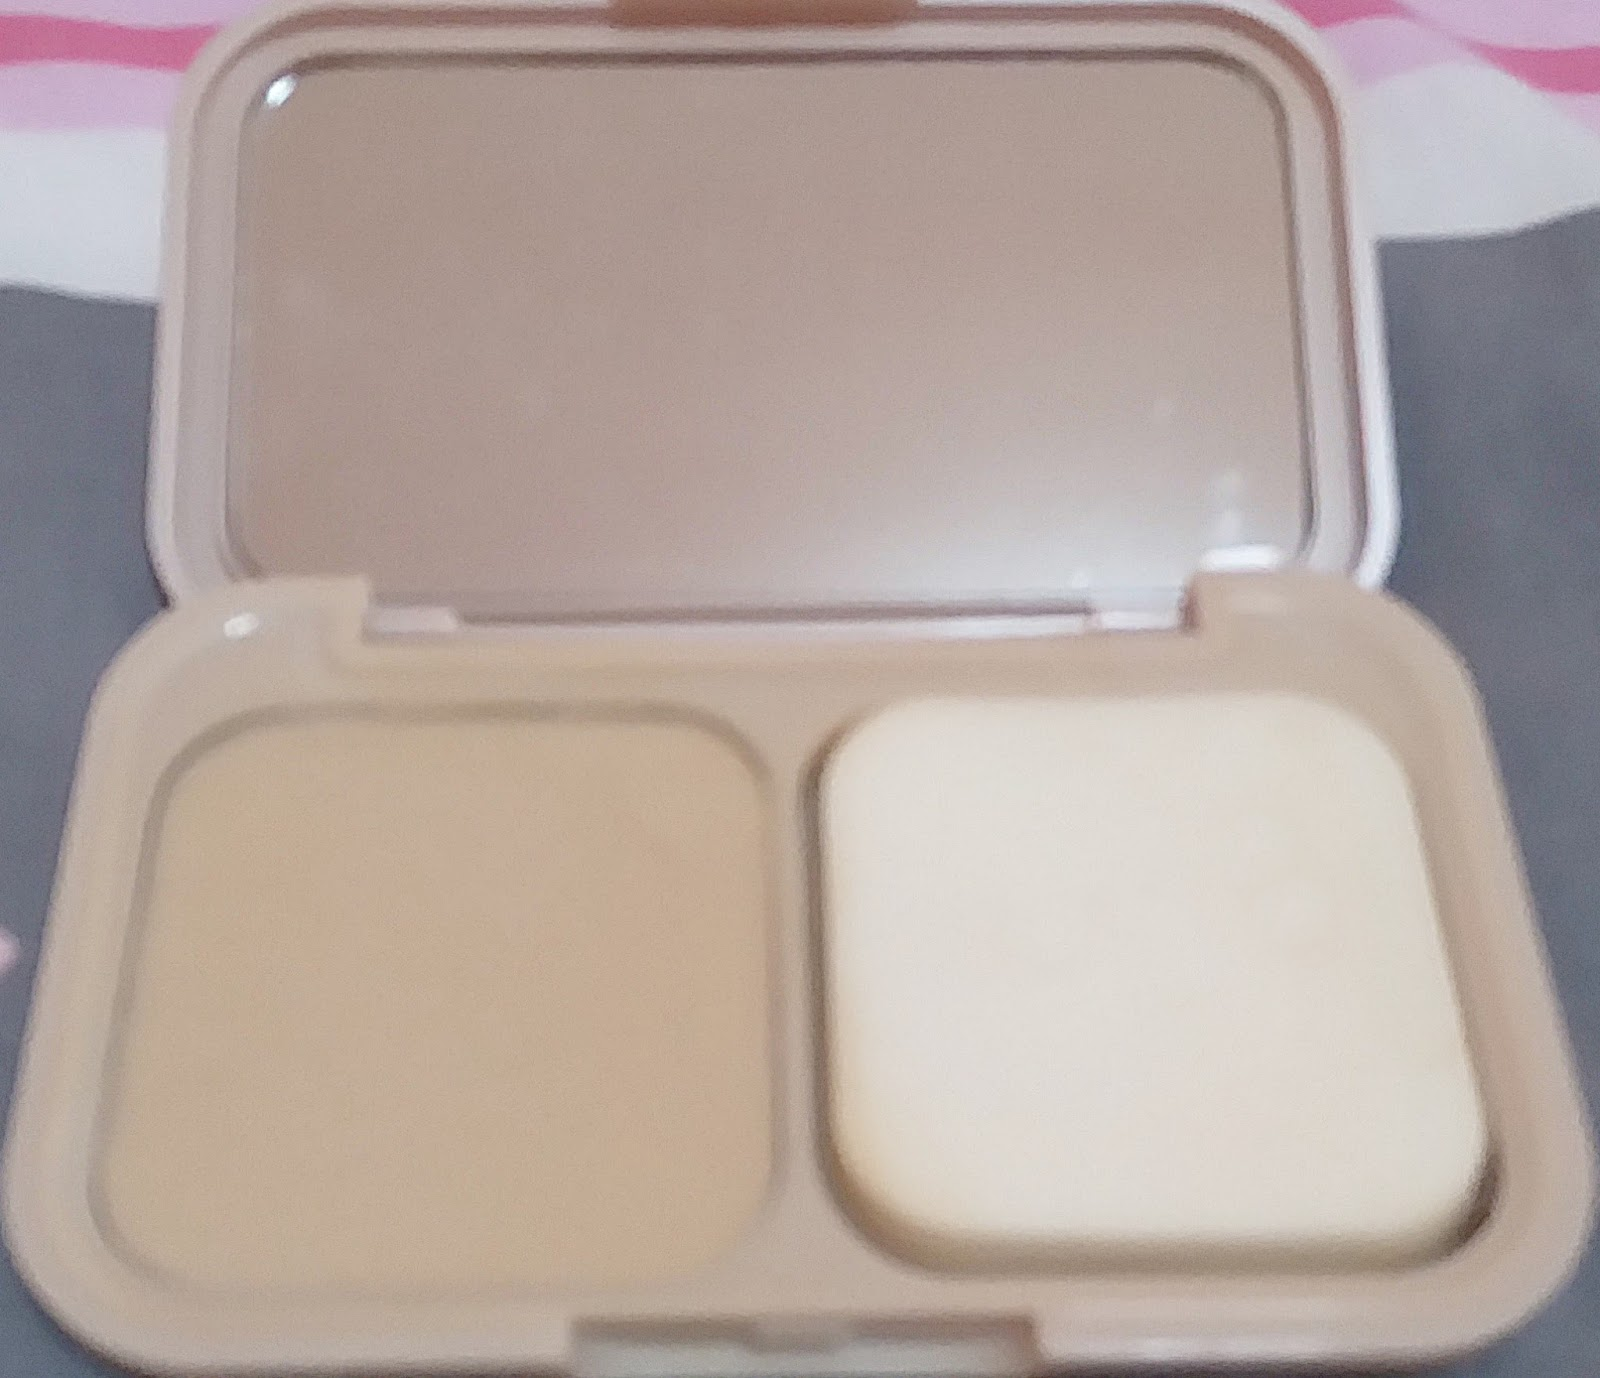 Anne s Product Reviews Blog: Maybelline Dream Satin Skin ...